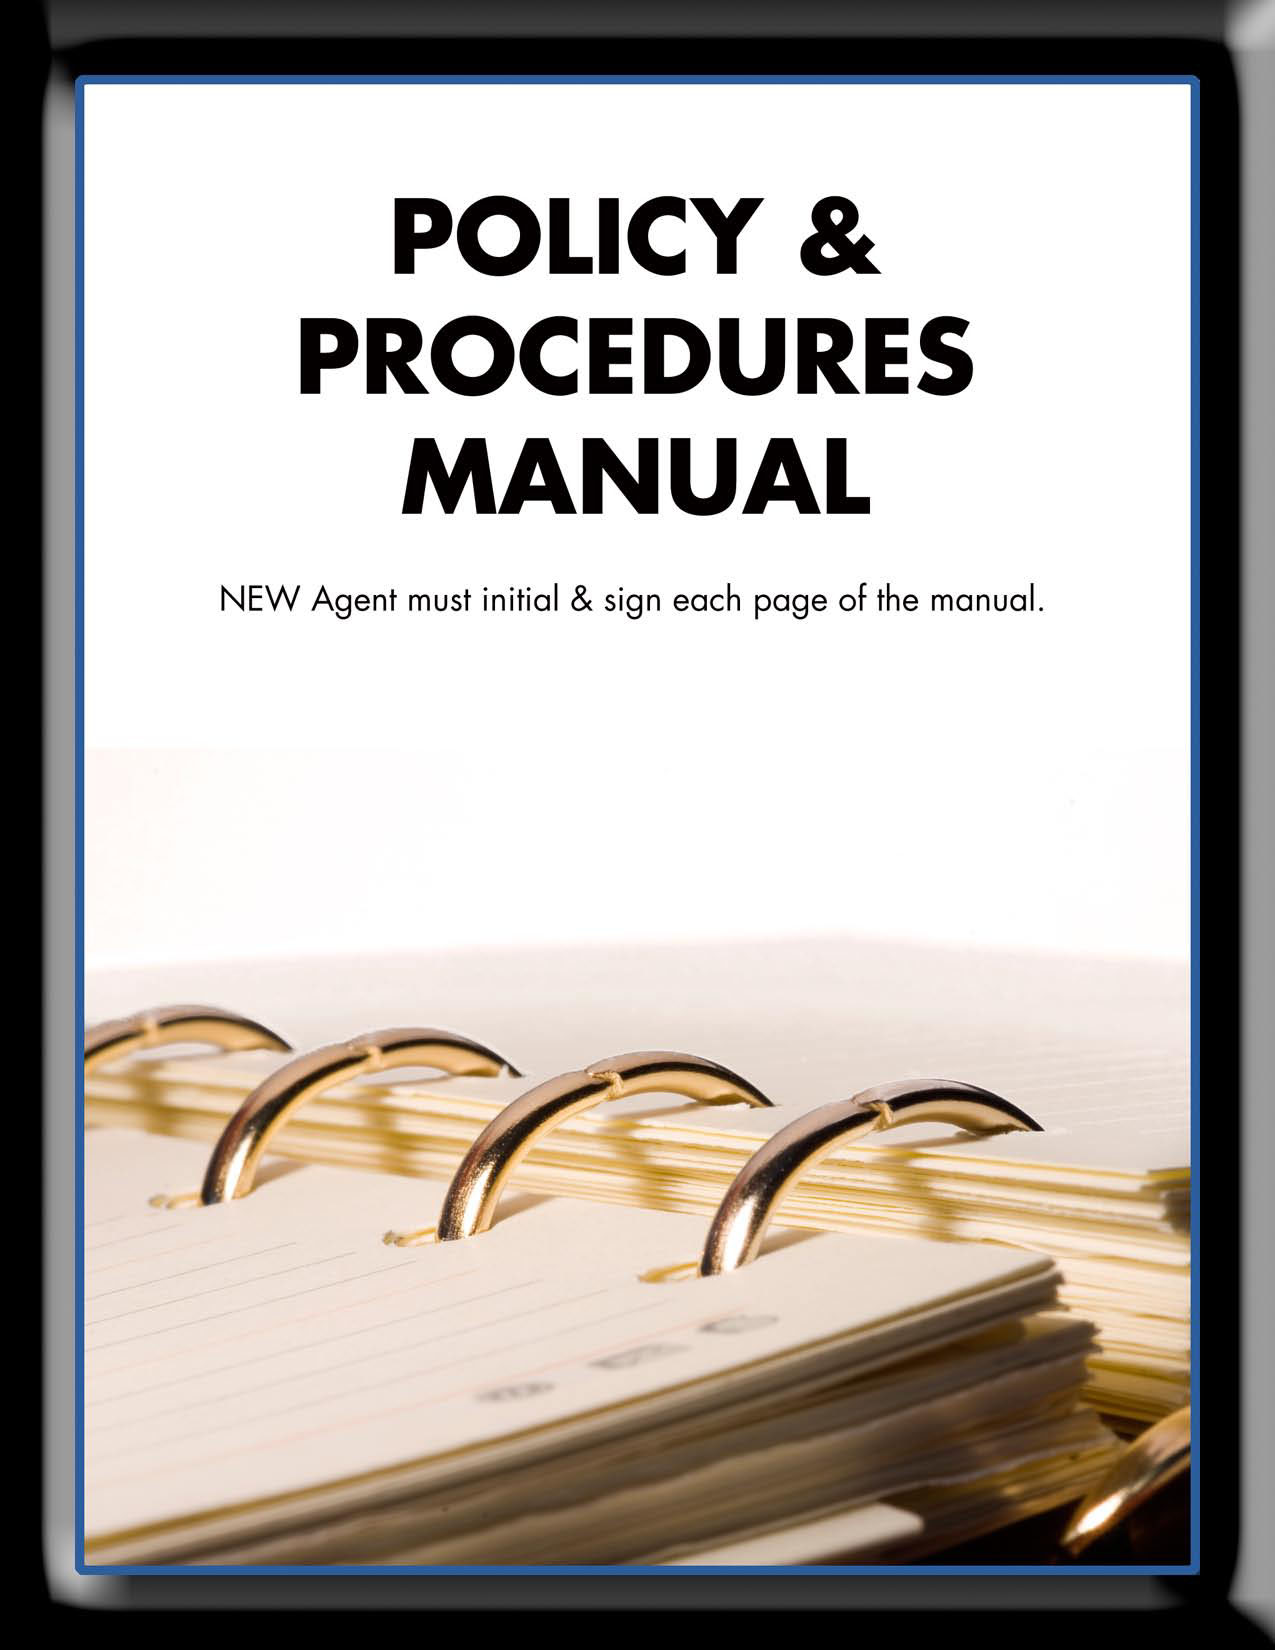 Procurement policy and procedures manual